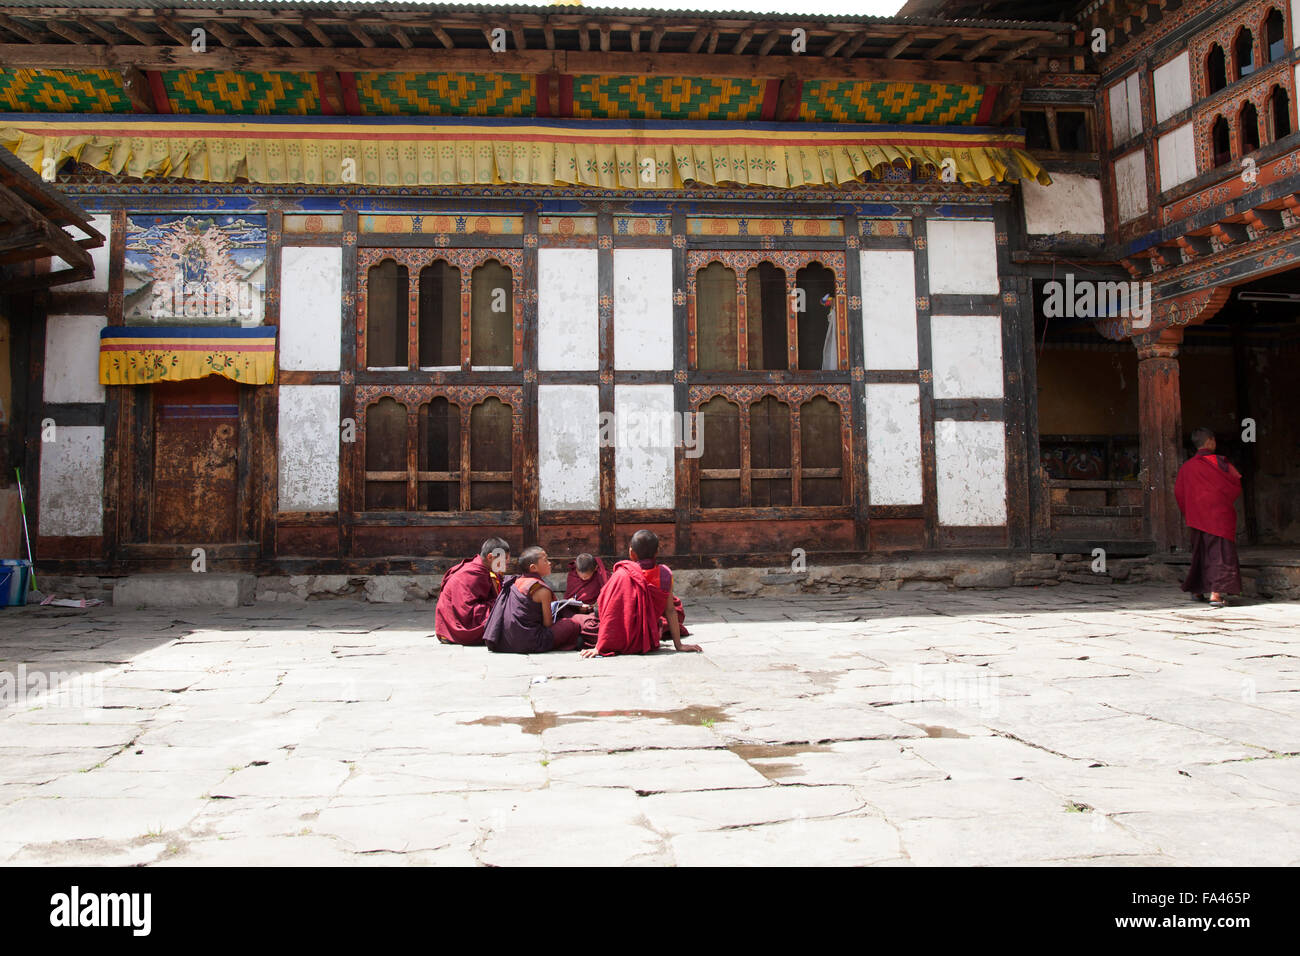 Young monks studying in Jakar, Bhutan - Stock Image